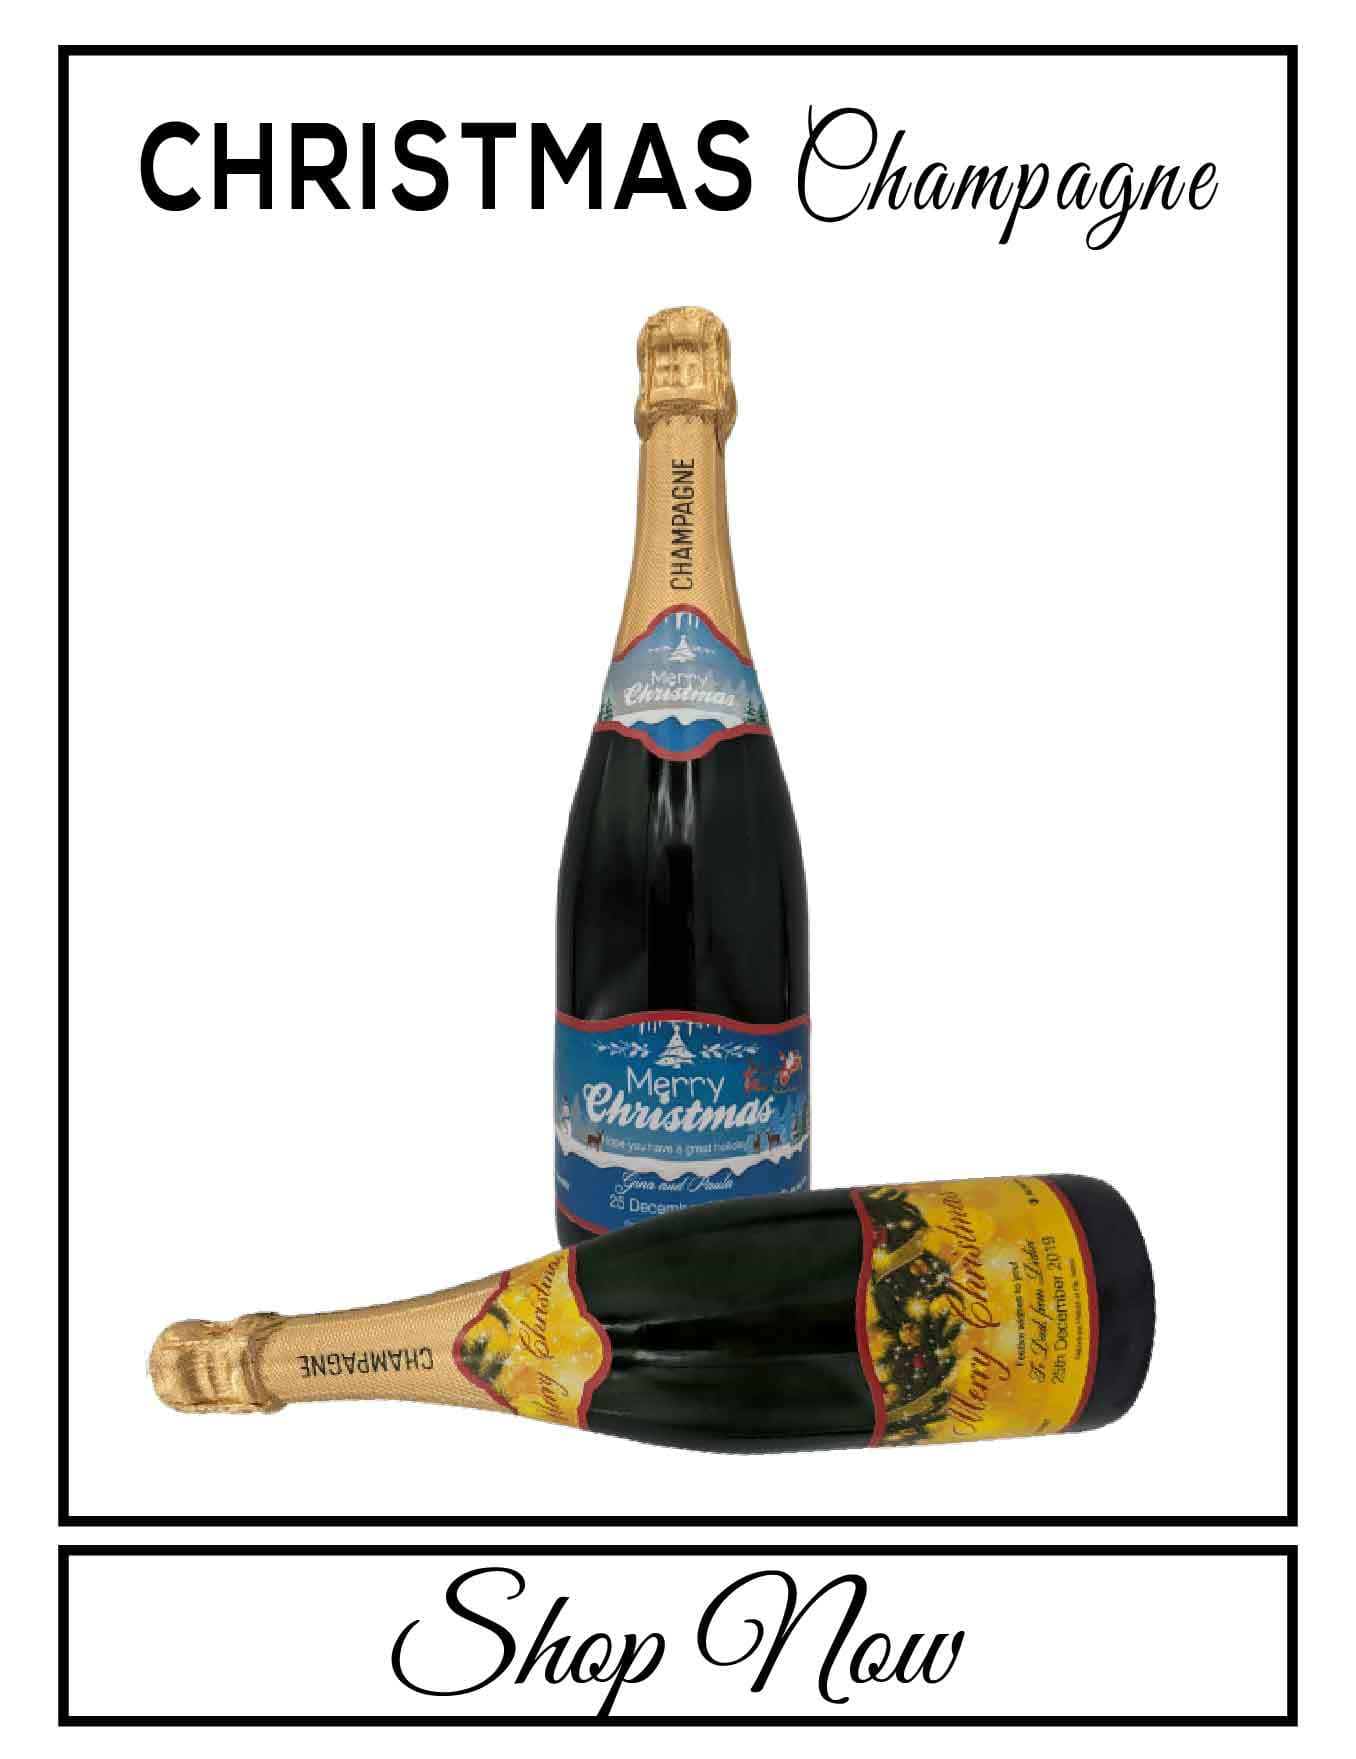 personalised Champagne customised bottle label delivery uk sparkling wine Christmas gift present bespoke unique